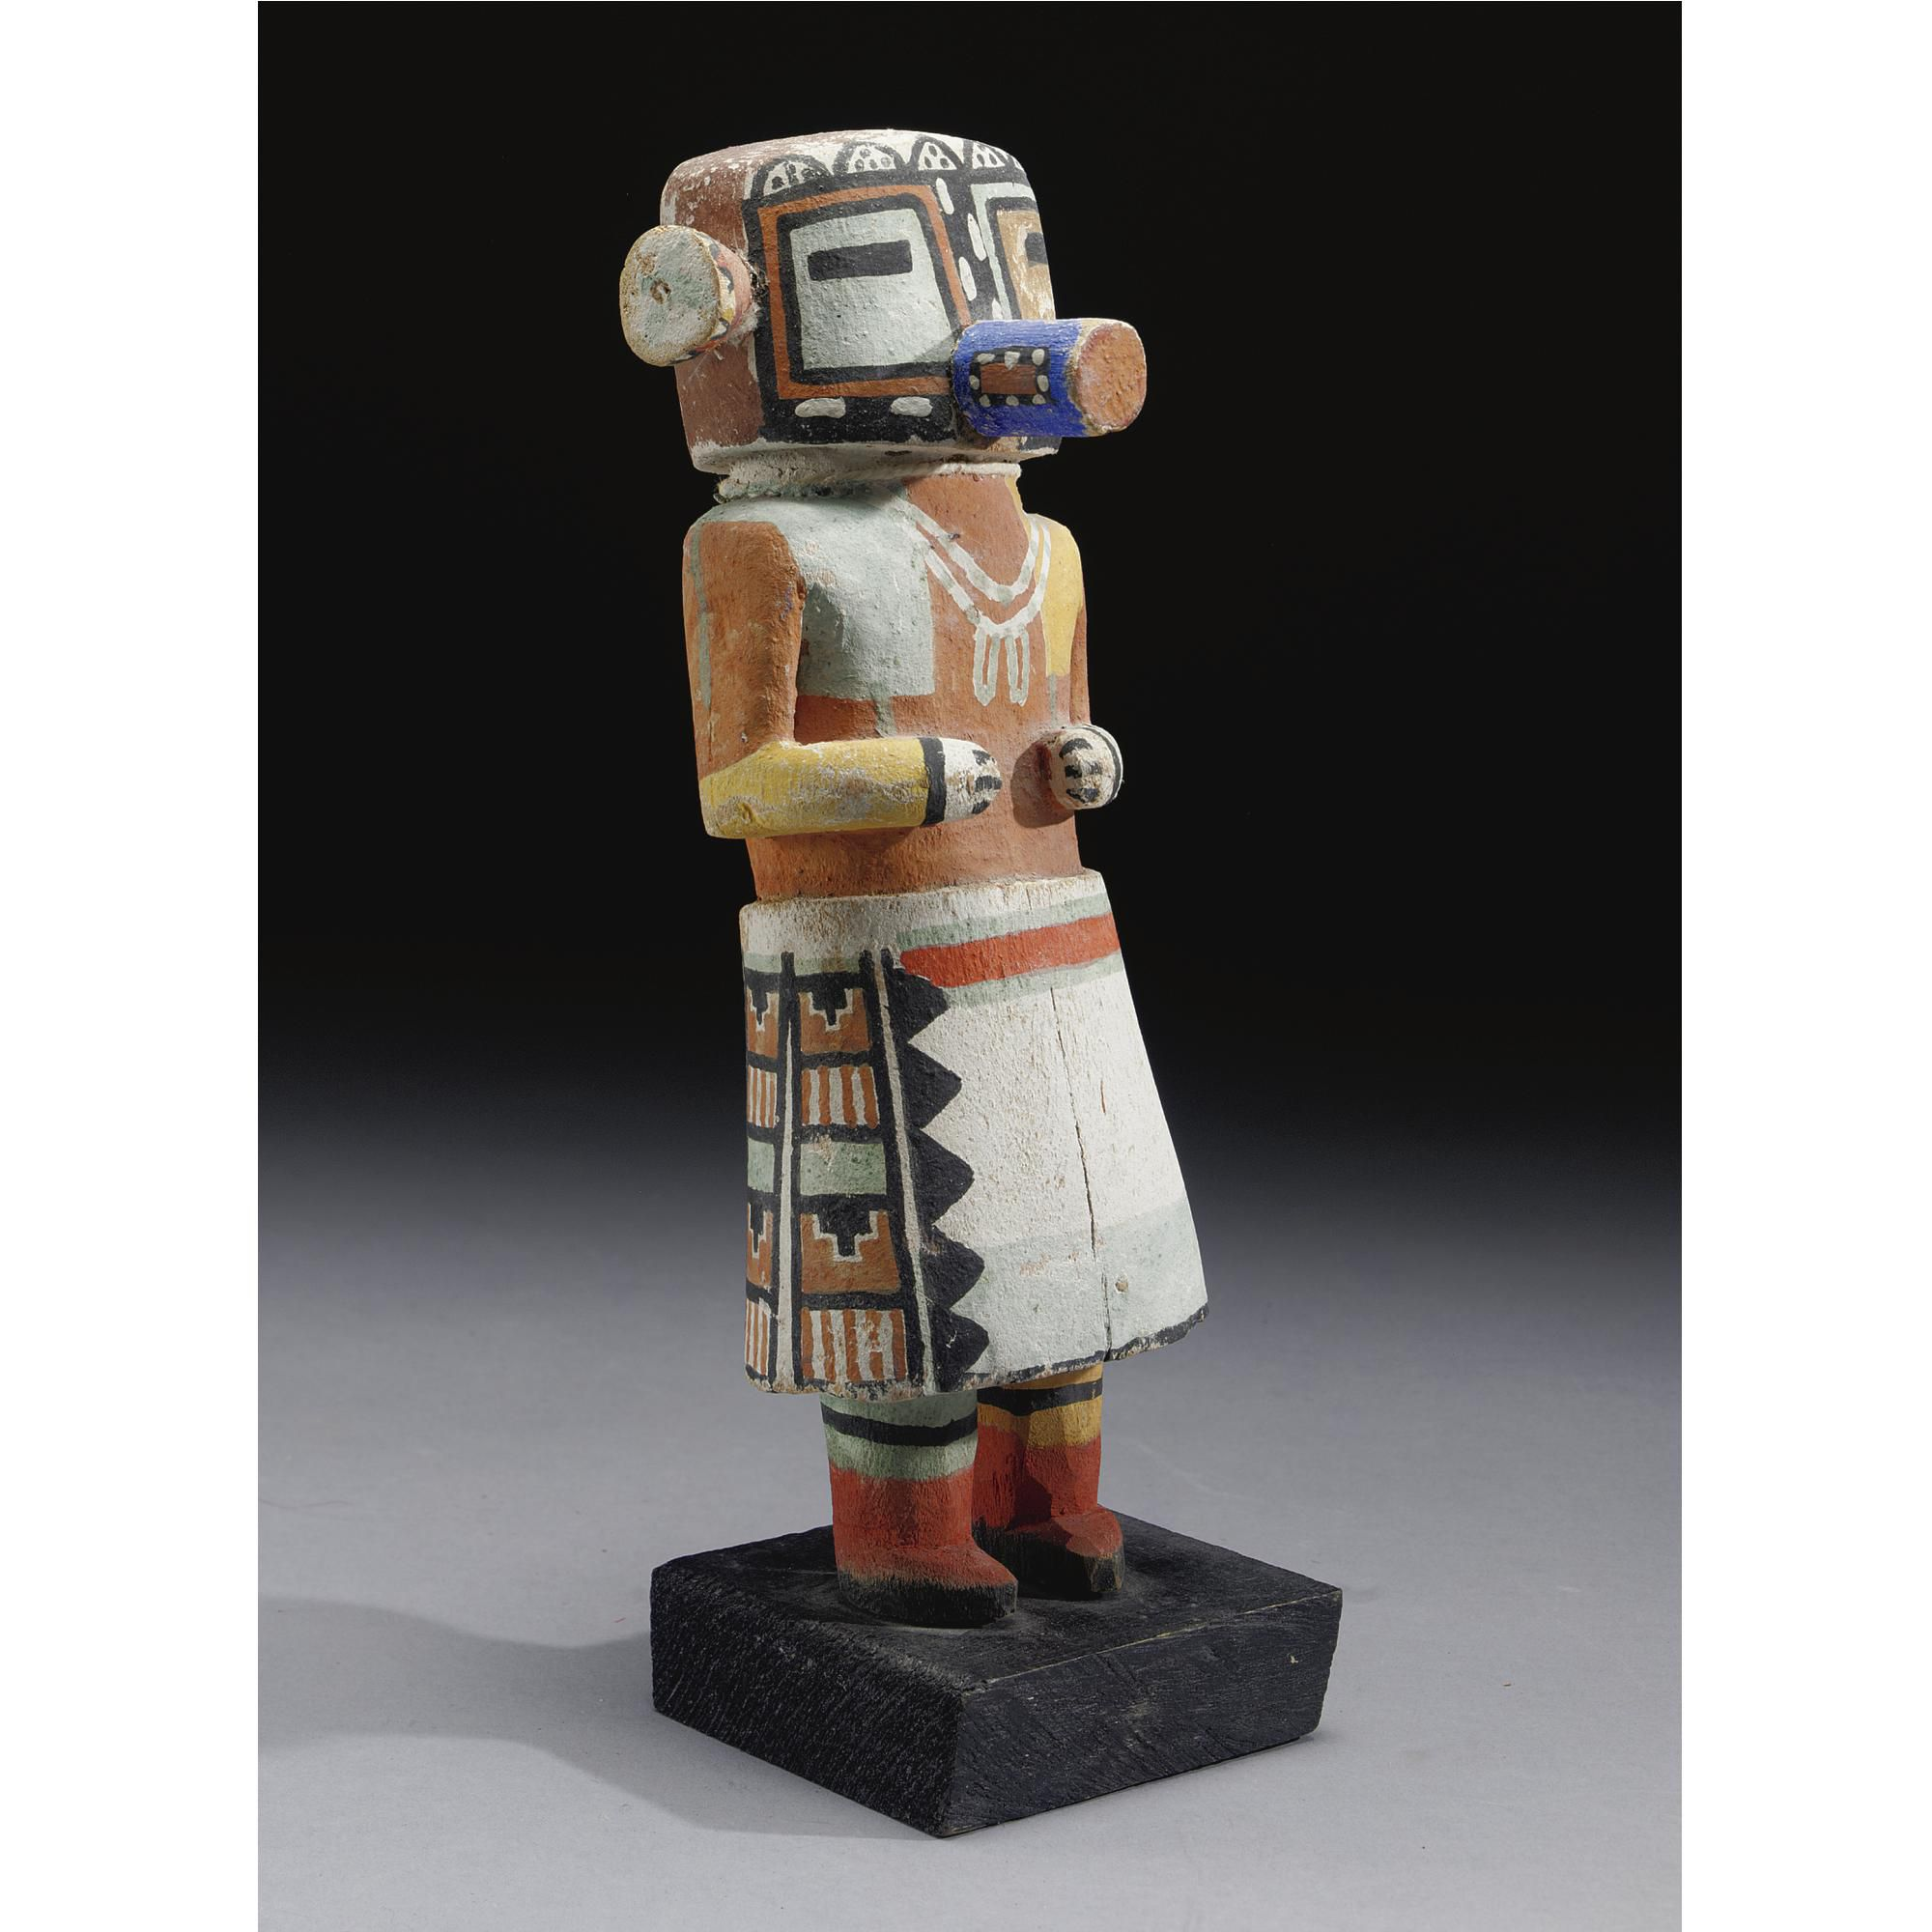 A HOPI POLYCHROMED WOOD KACHINA DOLL    composed of carved wood and pigments, depicting malo, with a blossom in place of the right ear.  Height without base 10 7/8 in.